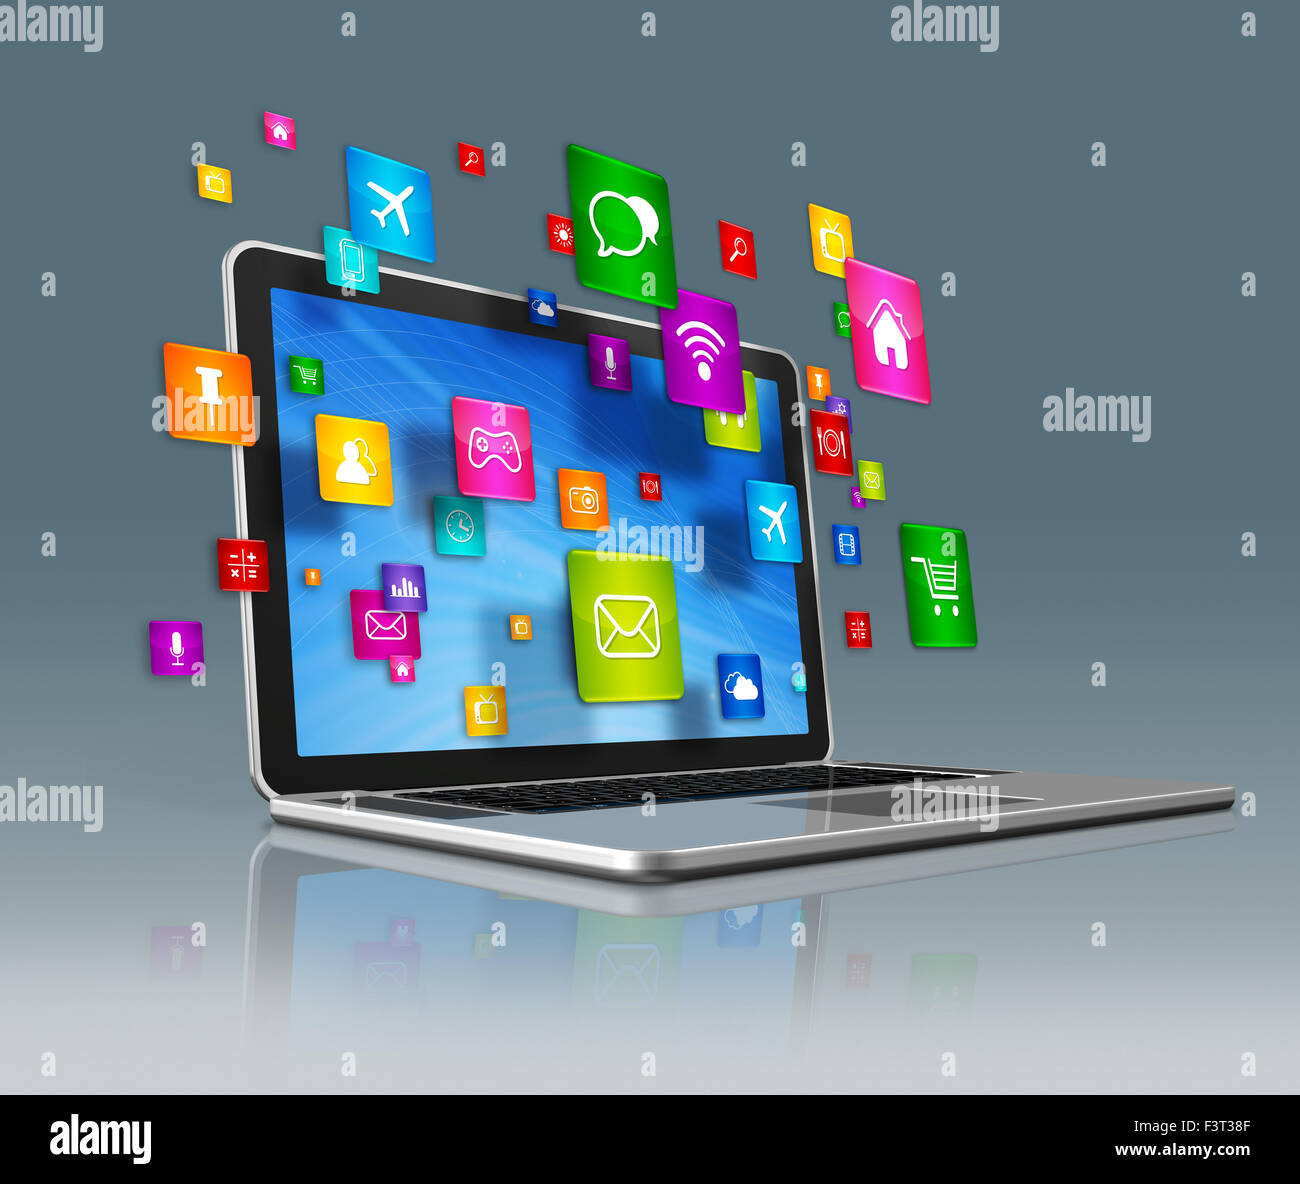 3d laptop computer with flying apps icons isolated on a